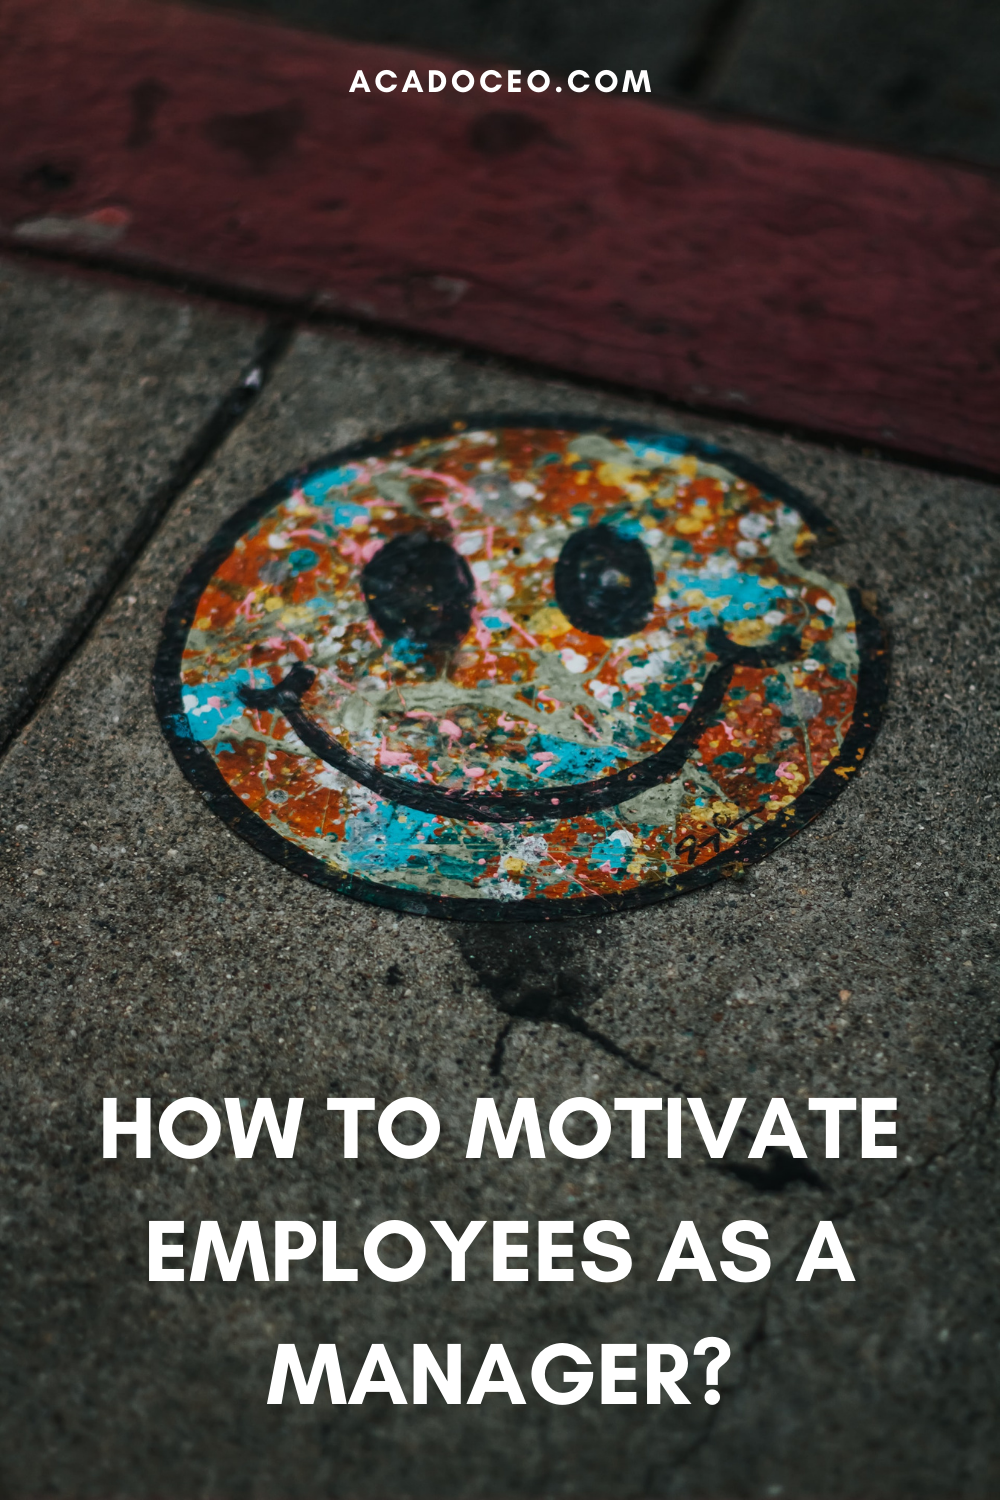 HOW TO MOTIVATE EMPLOYEES AS A MANAGER?